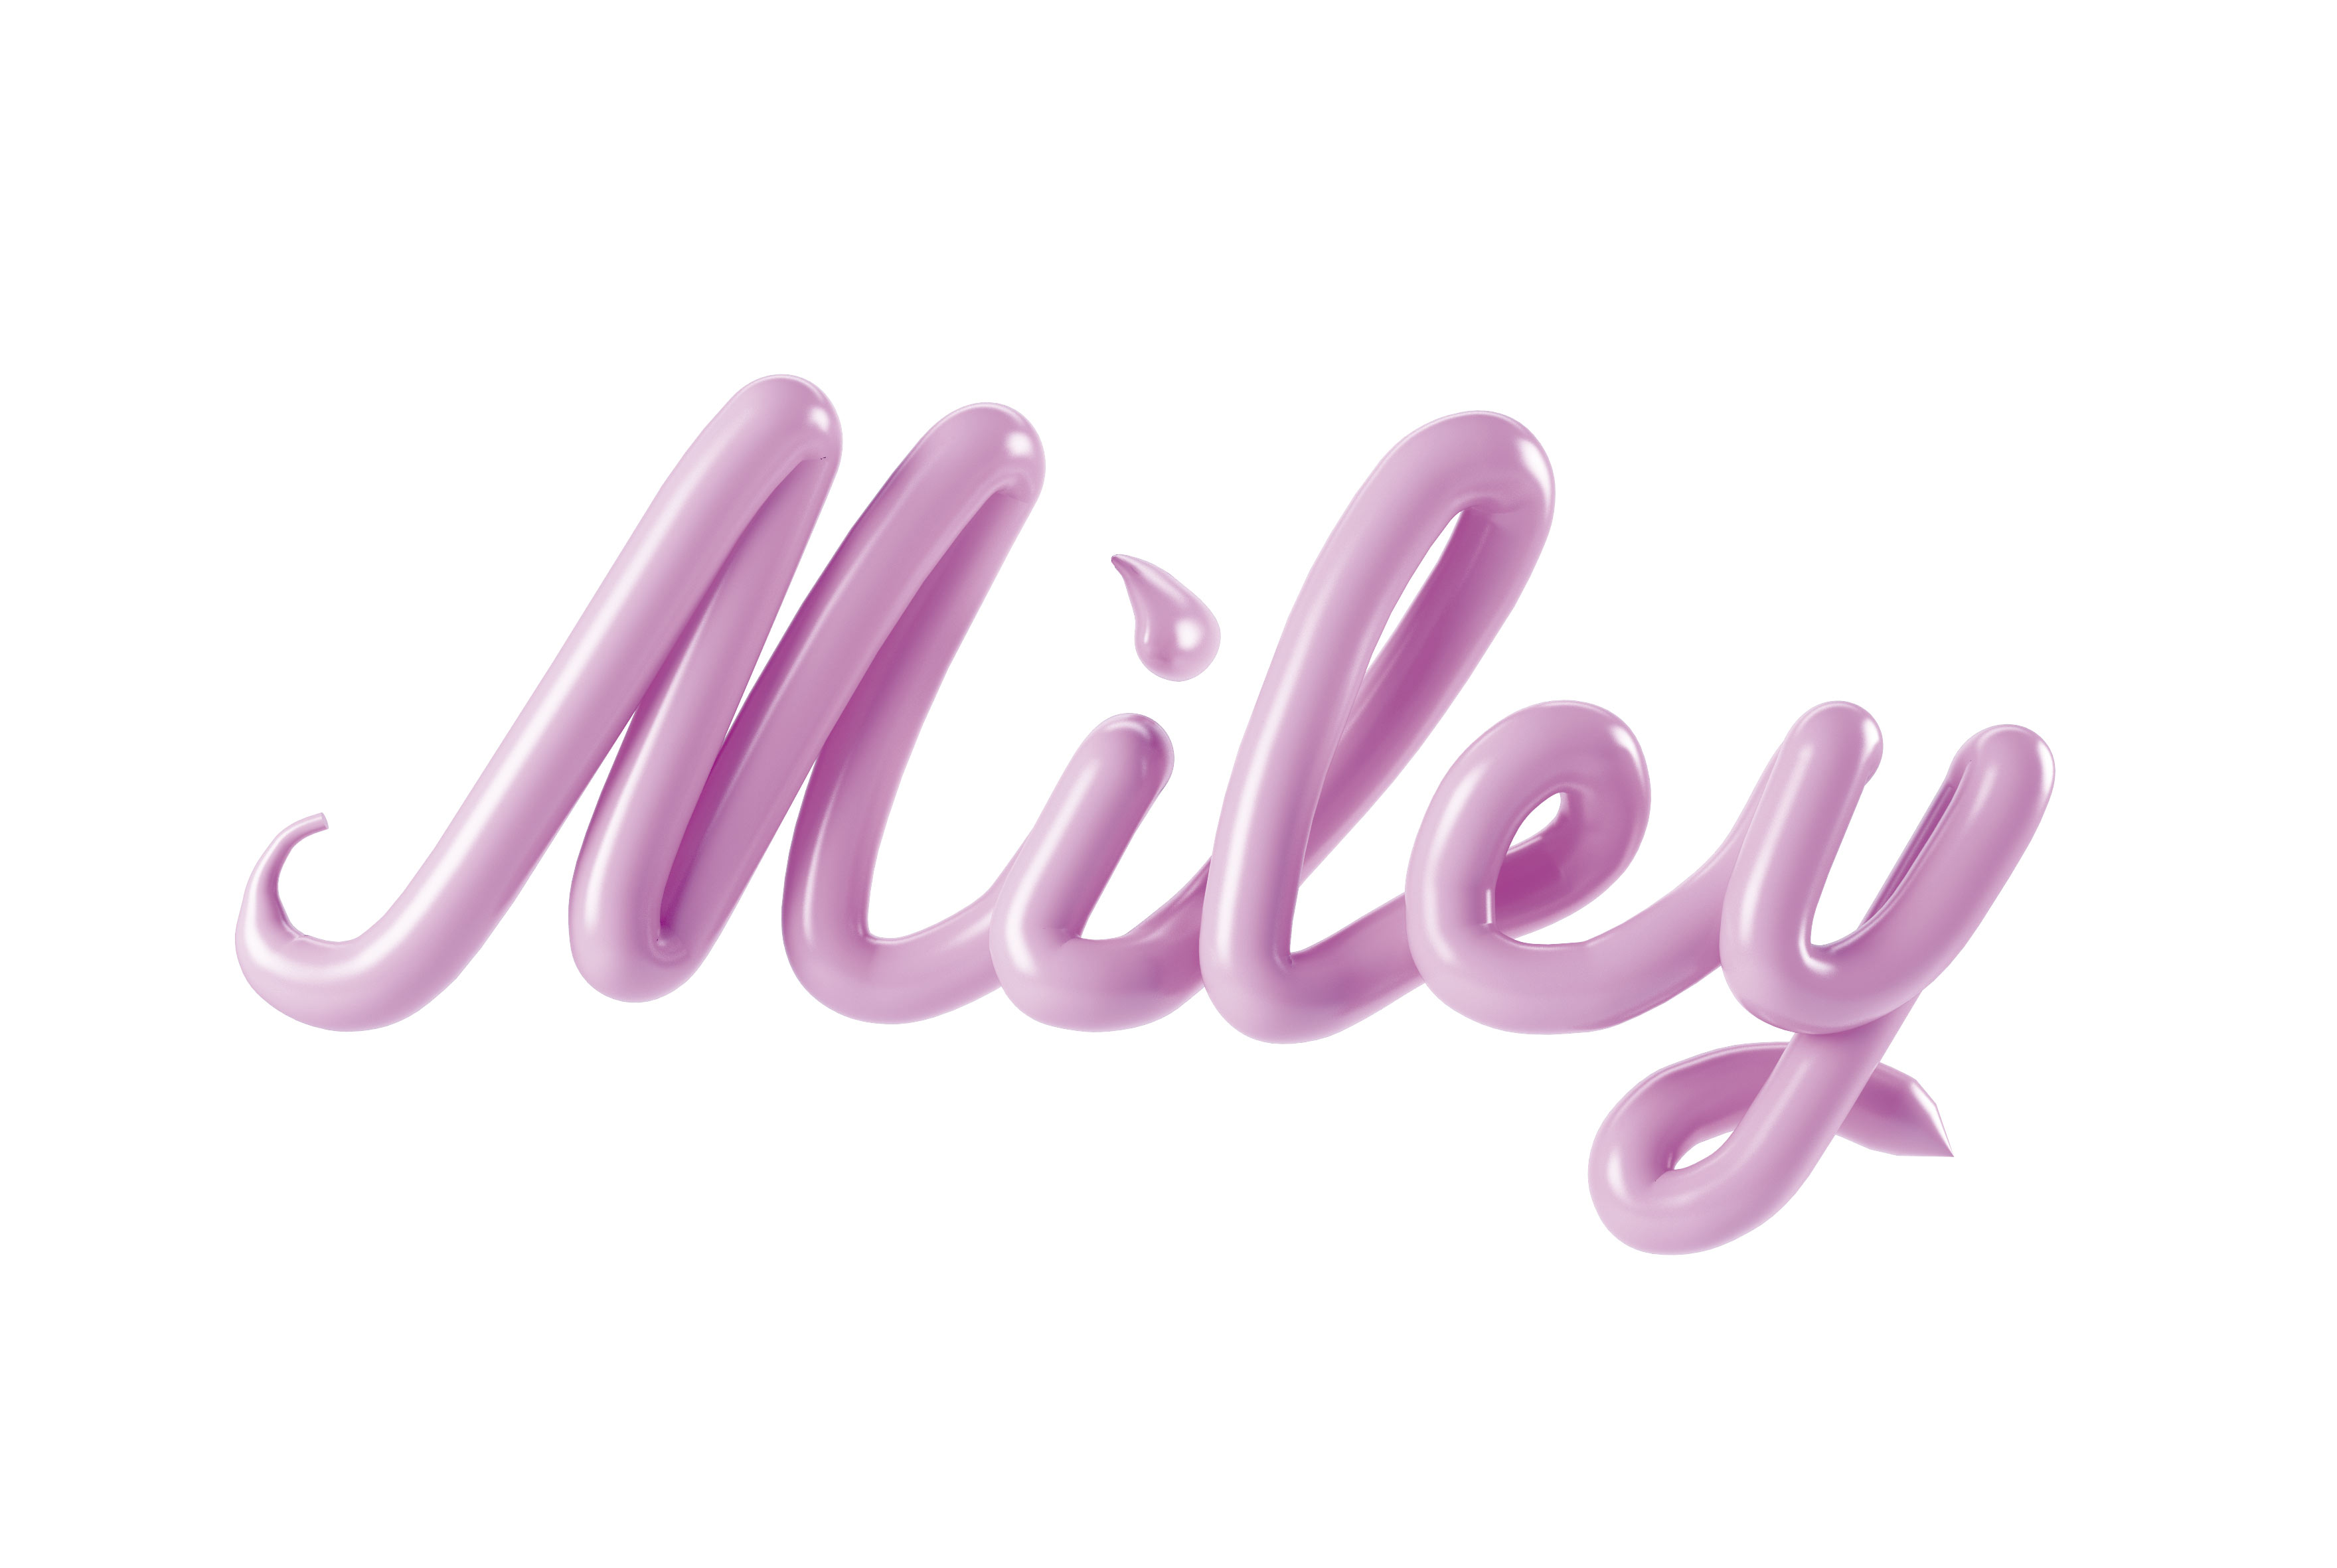 MILEYCYRUS MILEY CESS 3D LETTERING CGI 3DARTIST